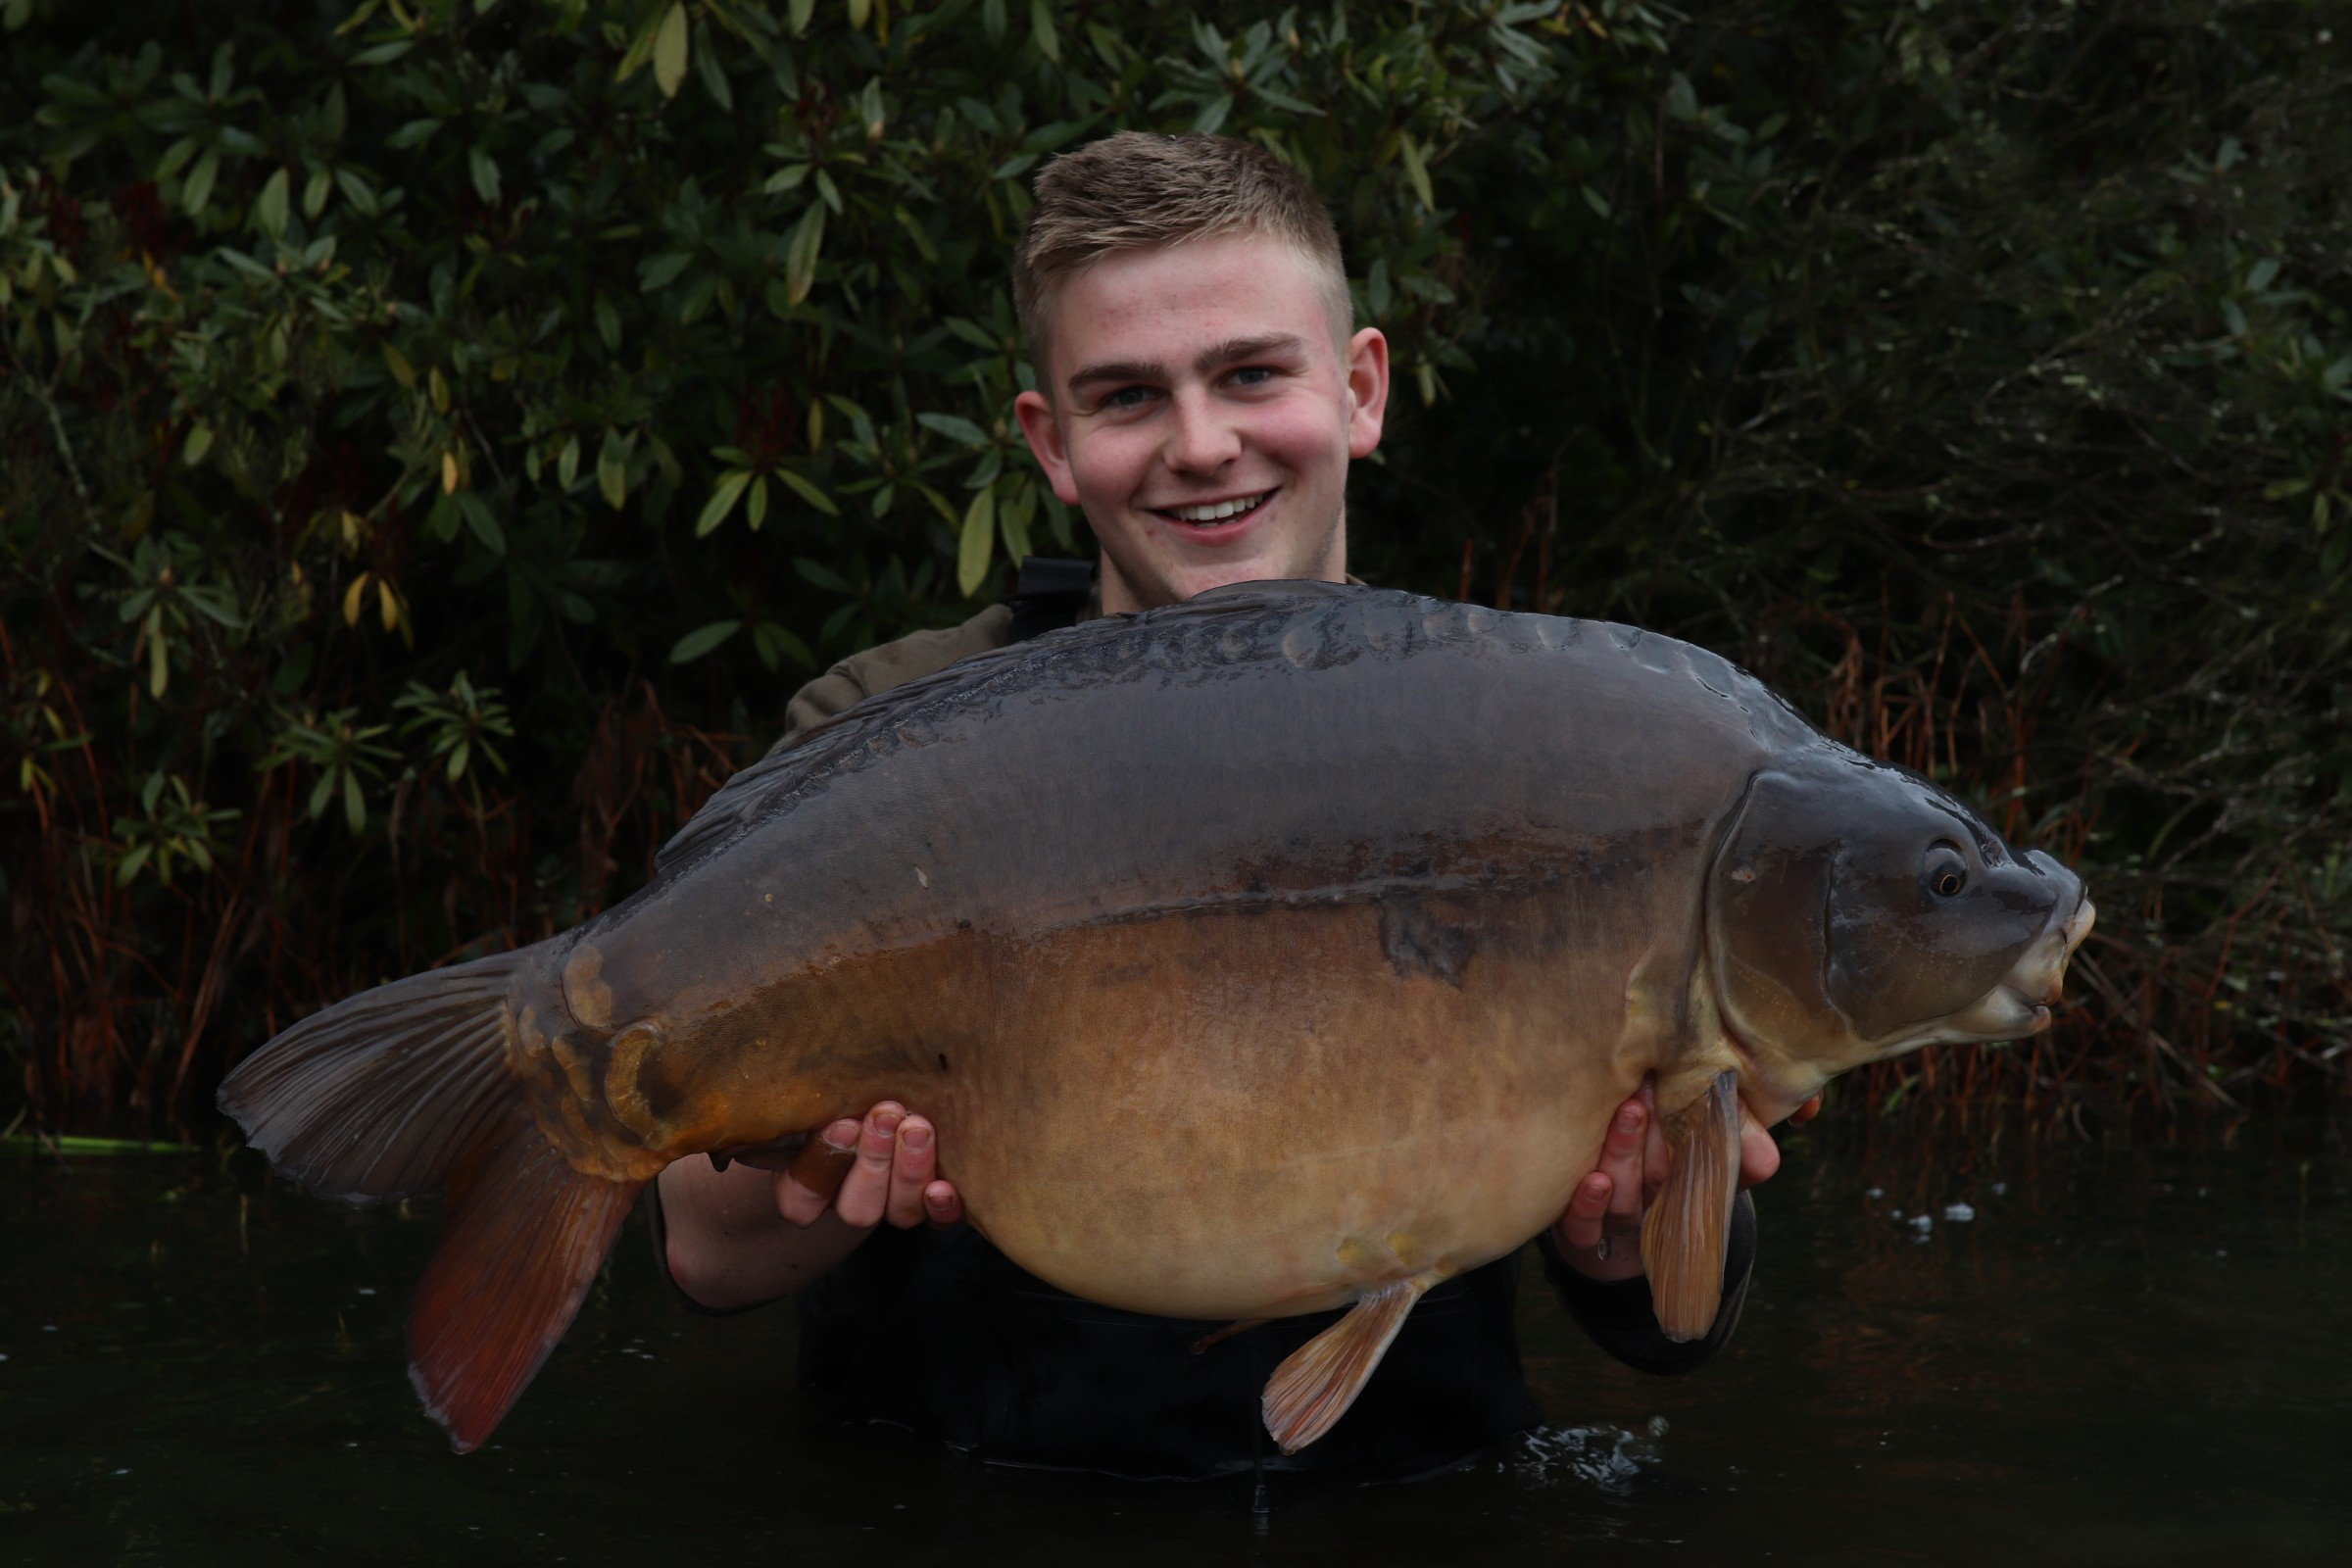 30lb 06oz  caught on Boilies